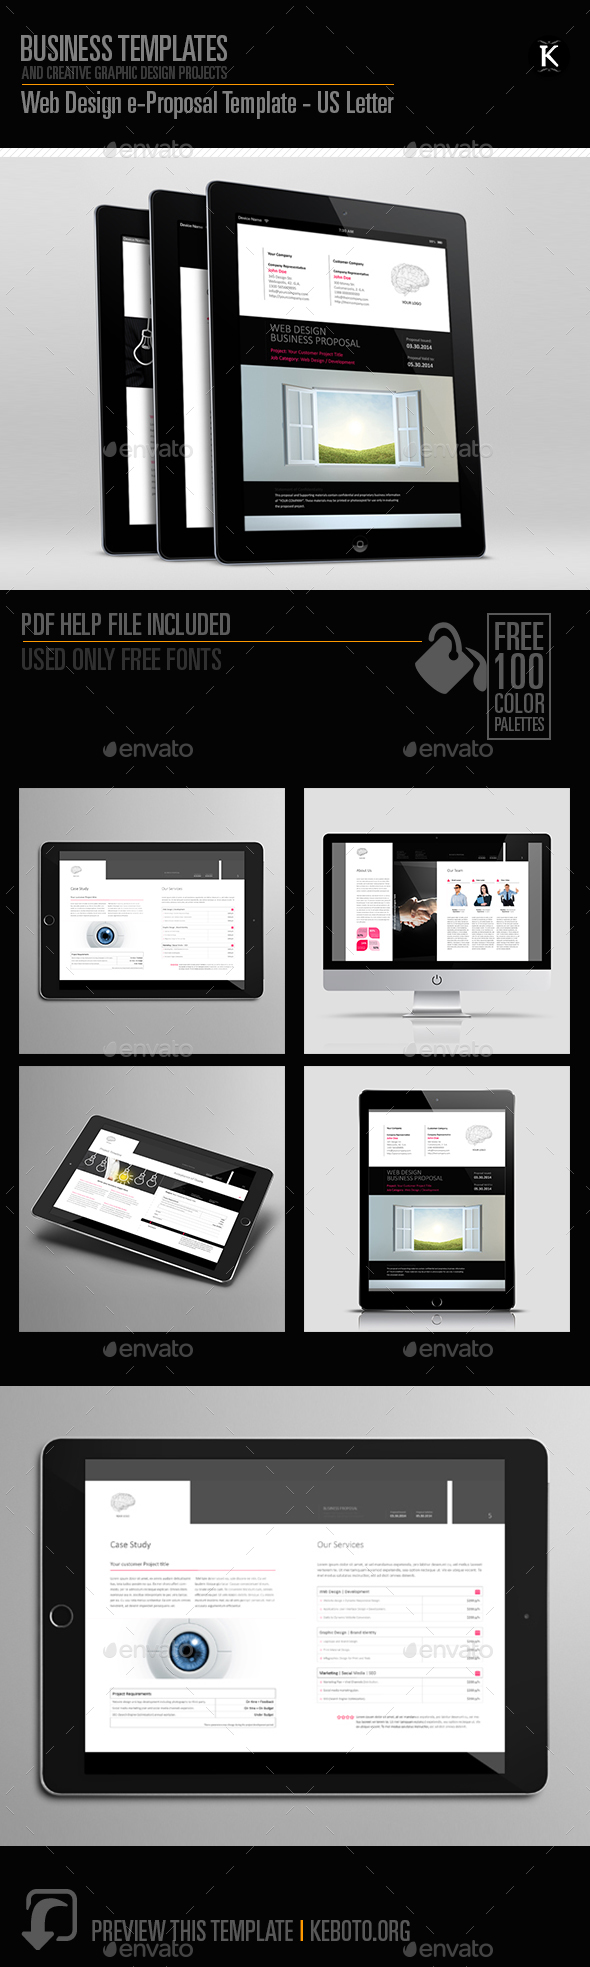 Web Design e-Proposal Template - US Letter - ePublishing